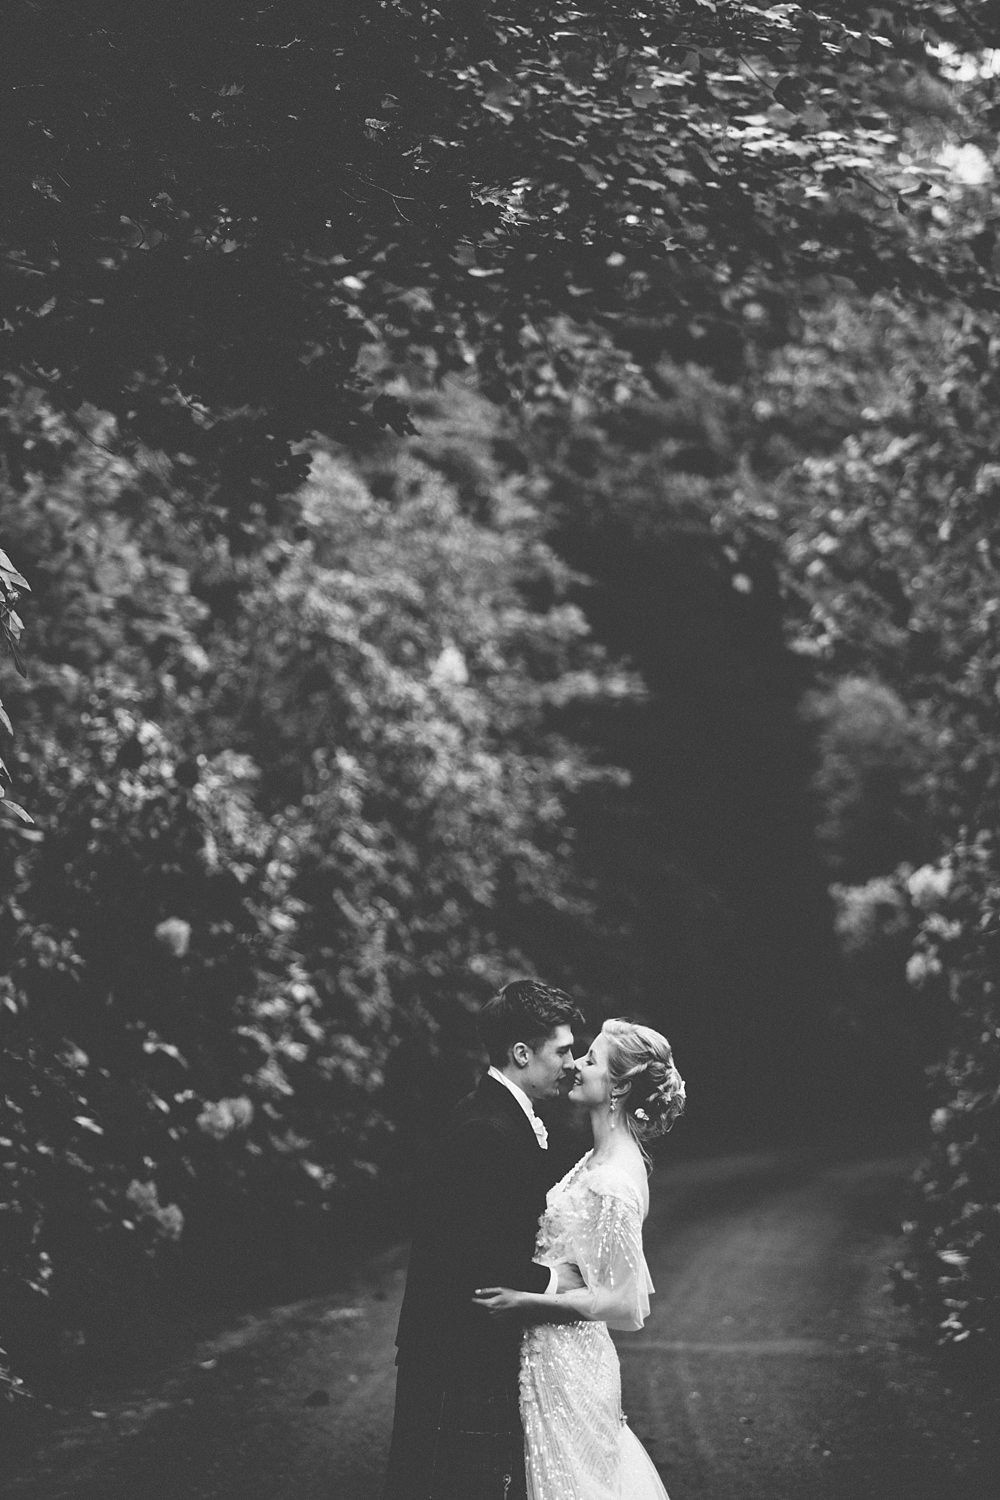 Chantal Lachance-Gibson Photography /destination wedding photographers,Fine Art Wedding Photographers,The Gibsons,alternative wedding photographers Scotland,natural wedding photographers,natural wedding photographers Scotland,romantic photographers Scotland,two wedding photographers scotland,wedding Solsgirth House,